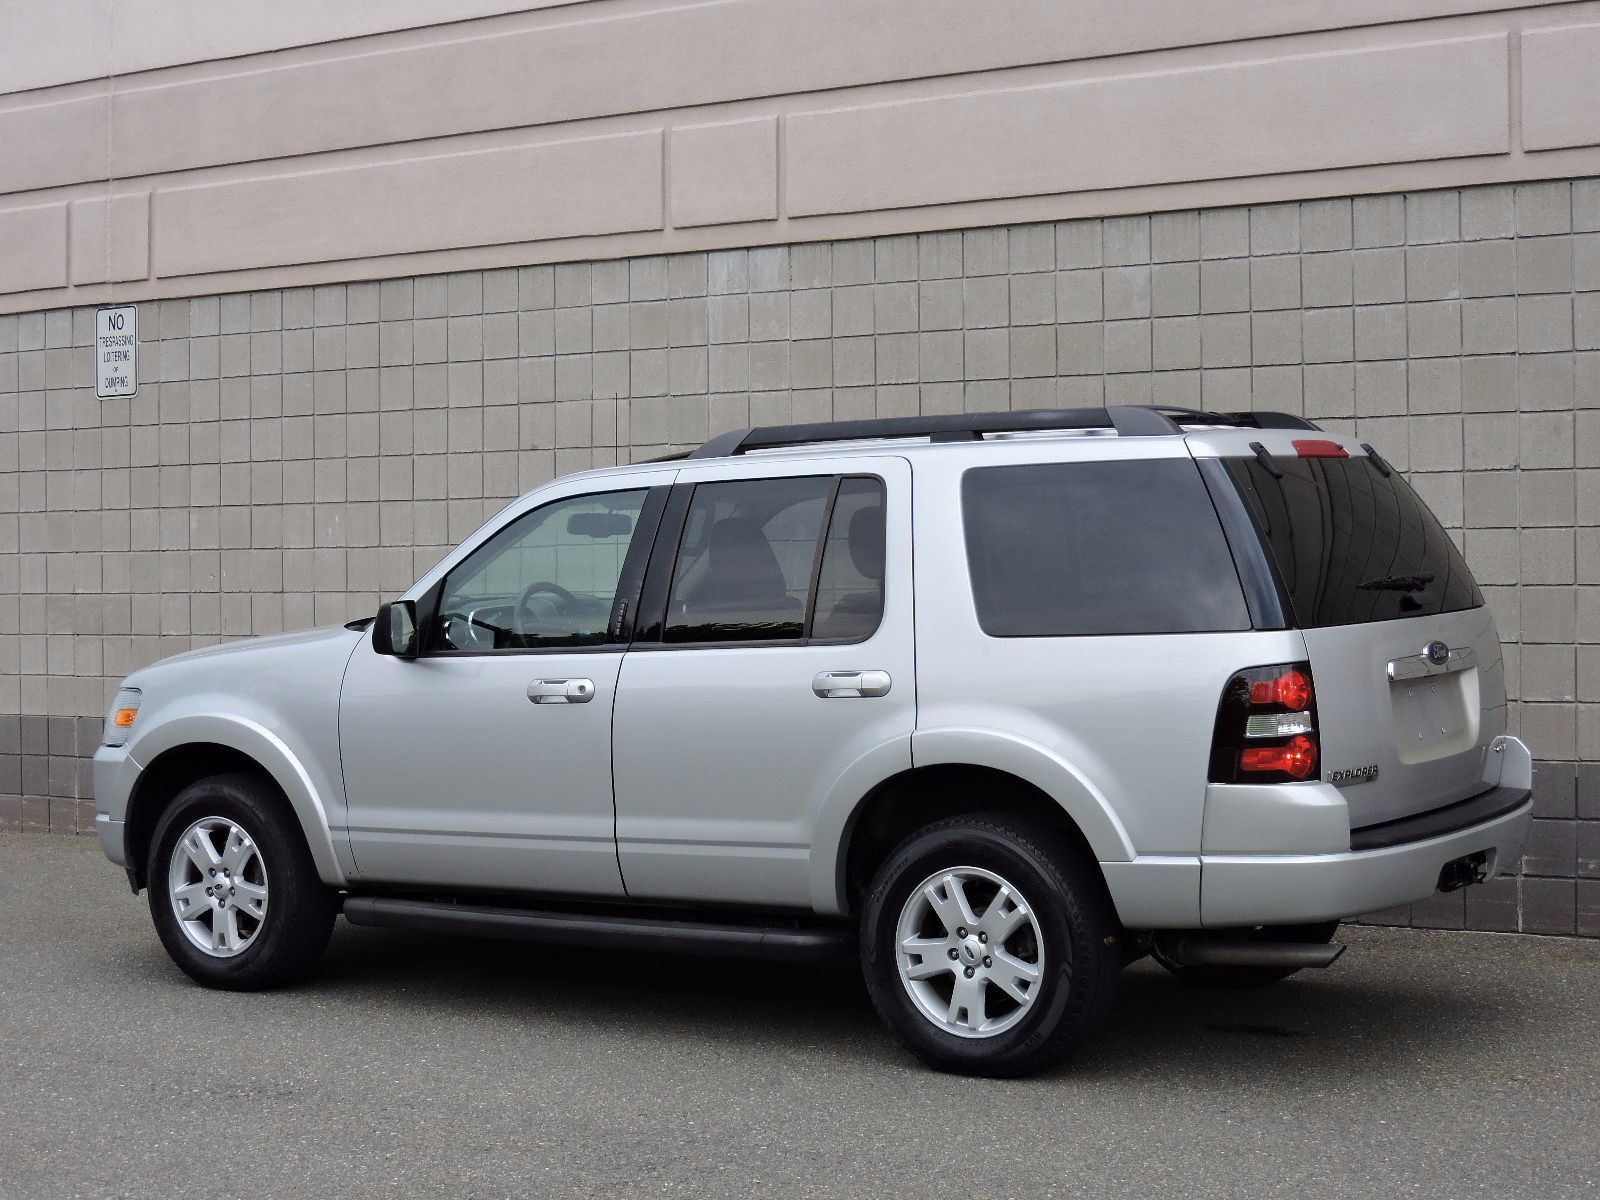 2011 ford explorer reviews ratings prices consumer reports autos post. Black Bedroom Furniture Sets. Home Design Ideas